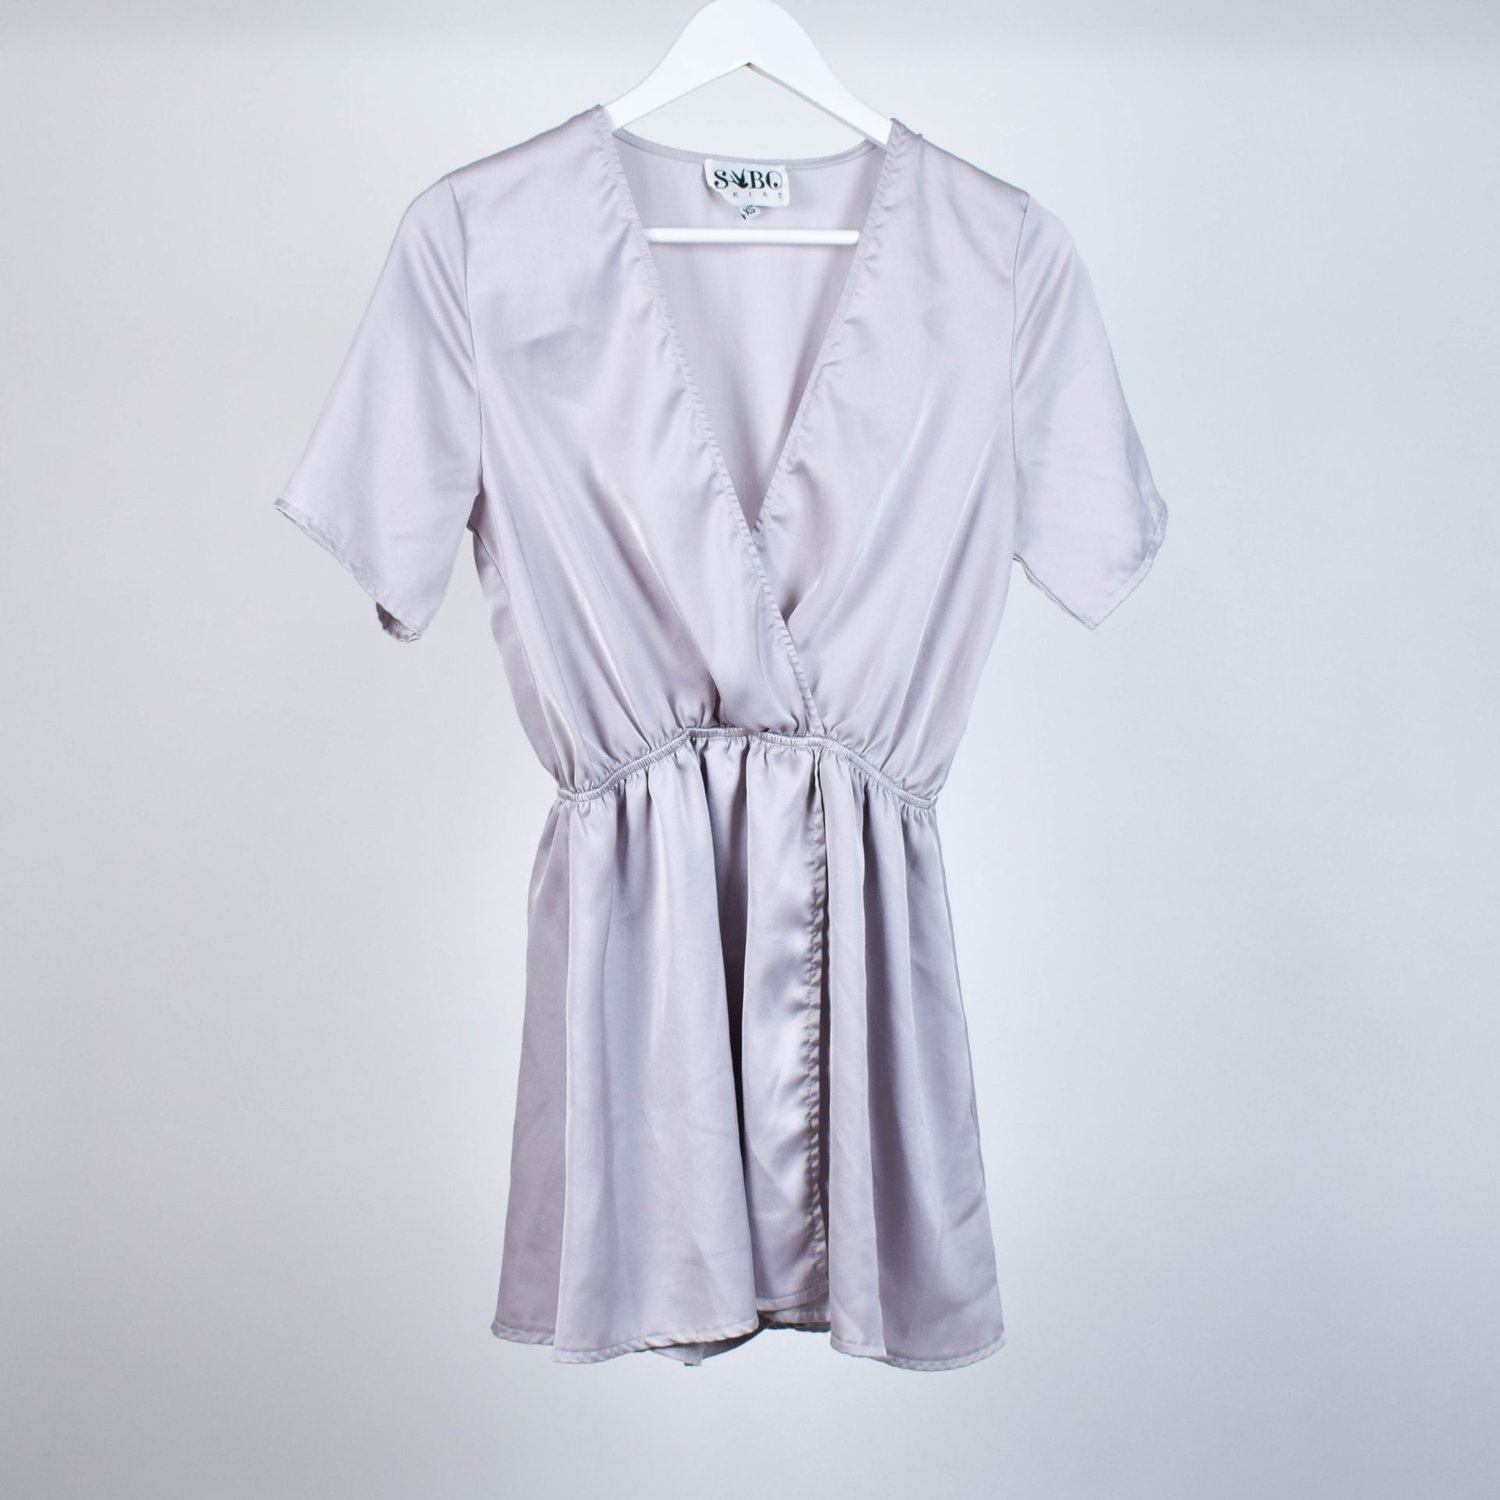 Satin playsuit, size XS